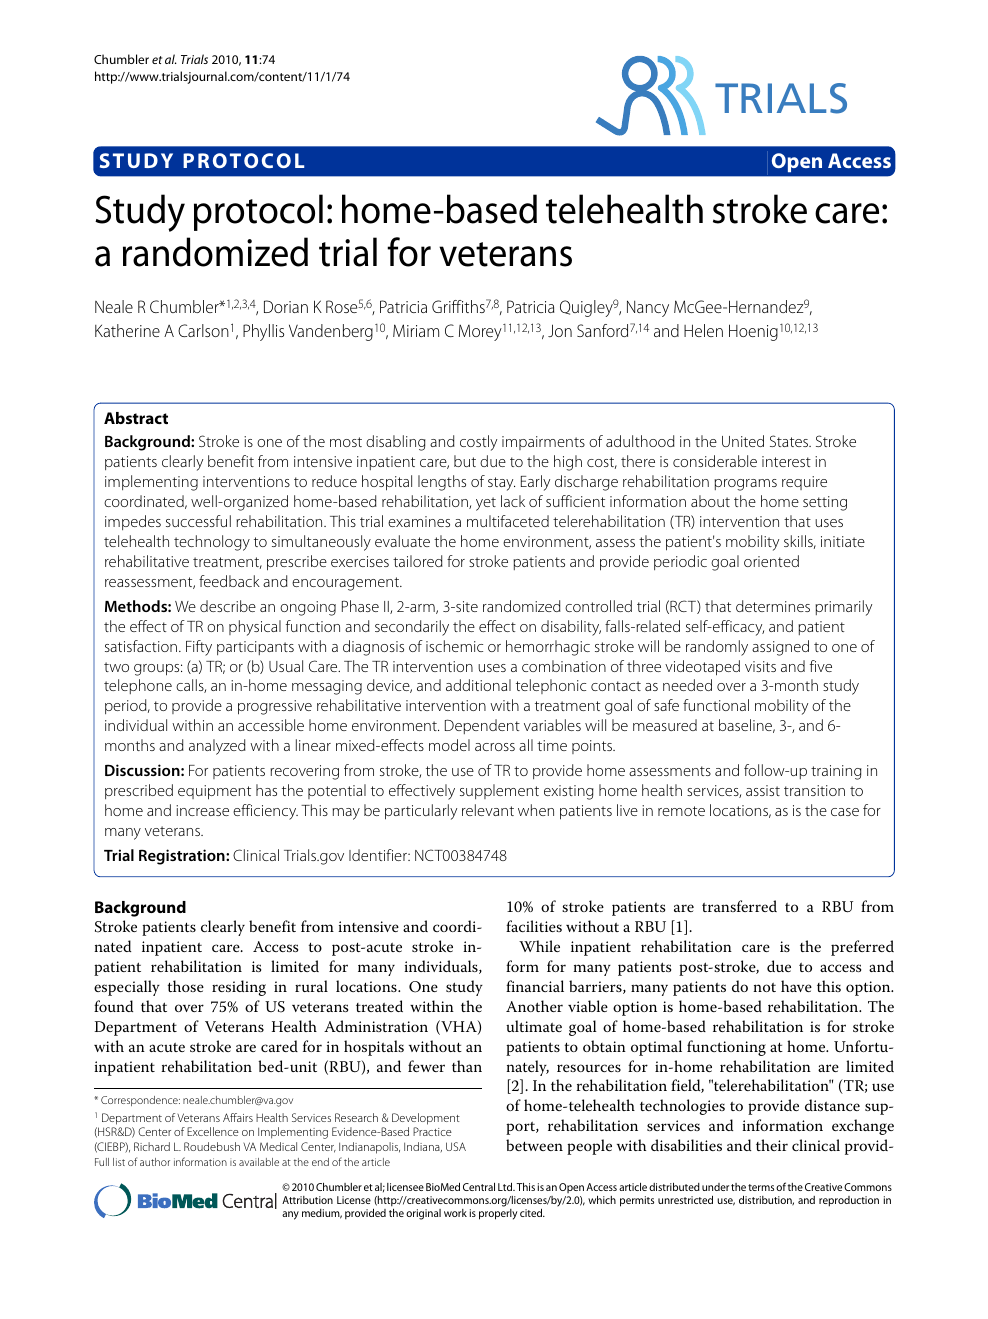 Study protocol: home-based telehealth stroke care: a